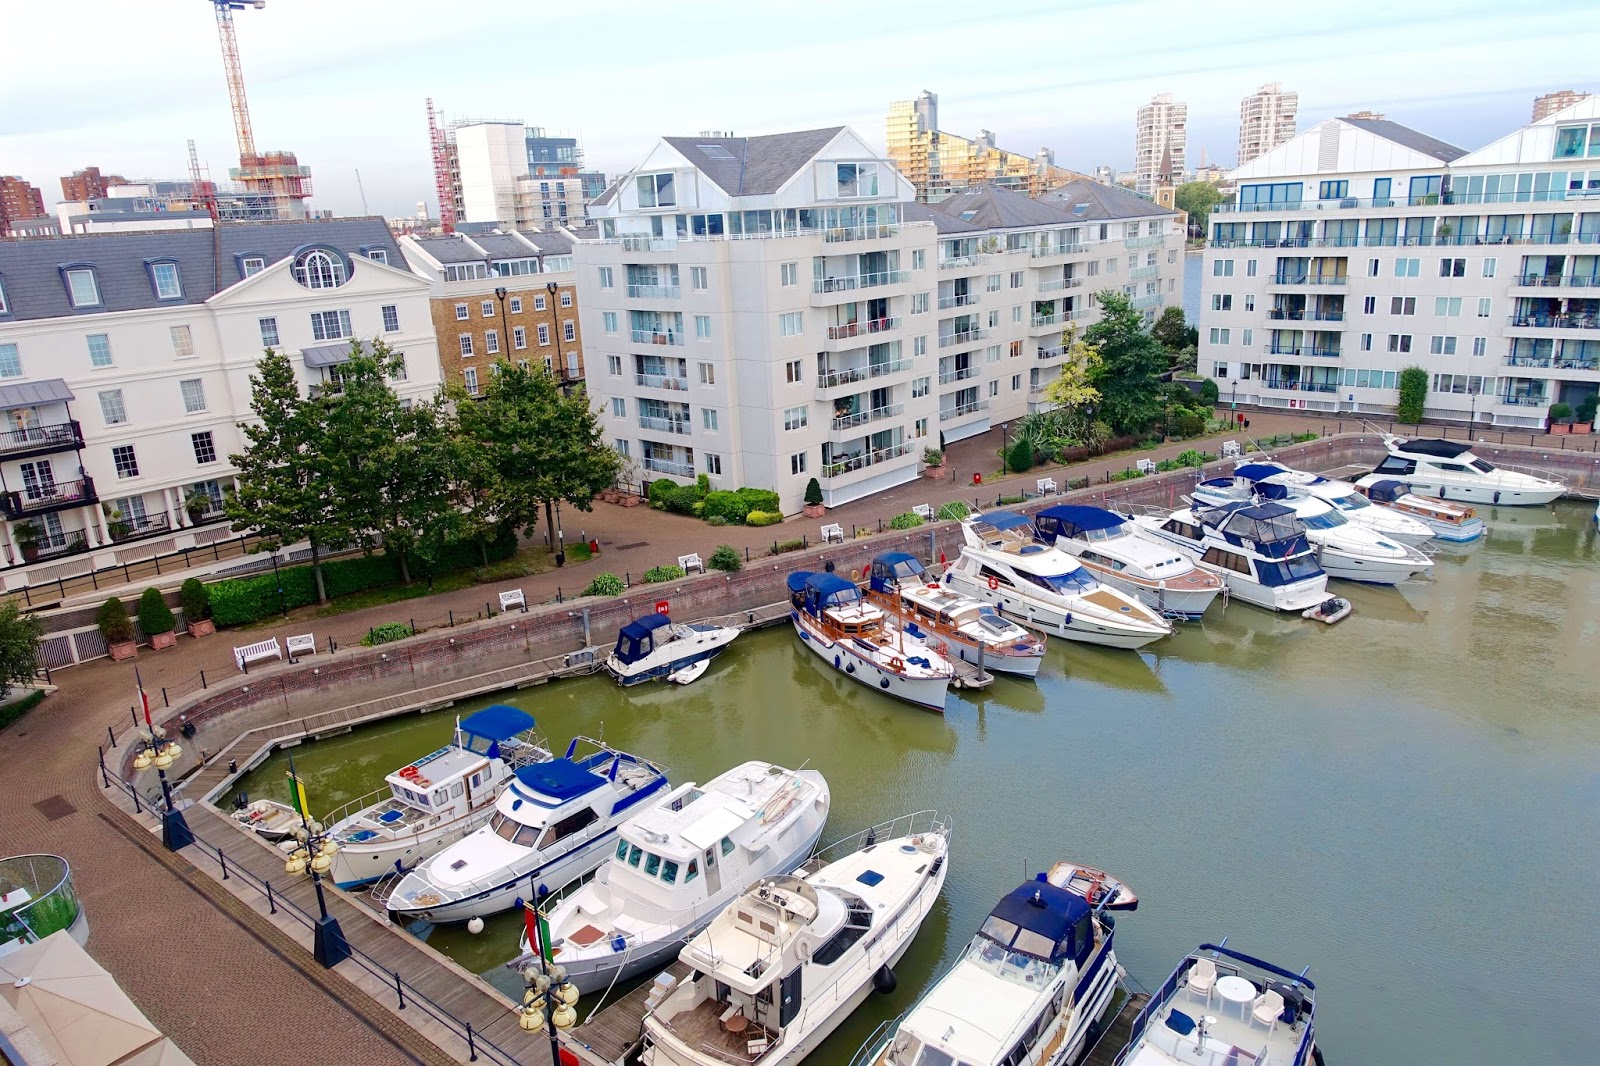 chelsea harbour and boats